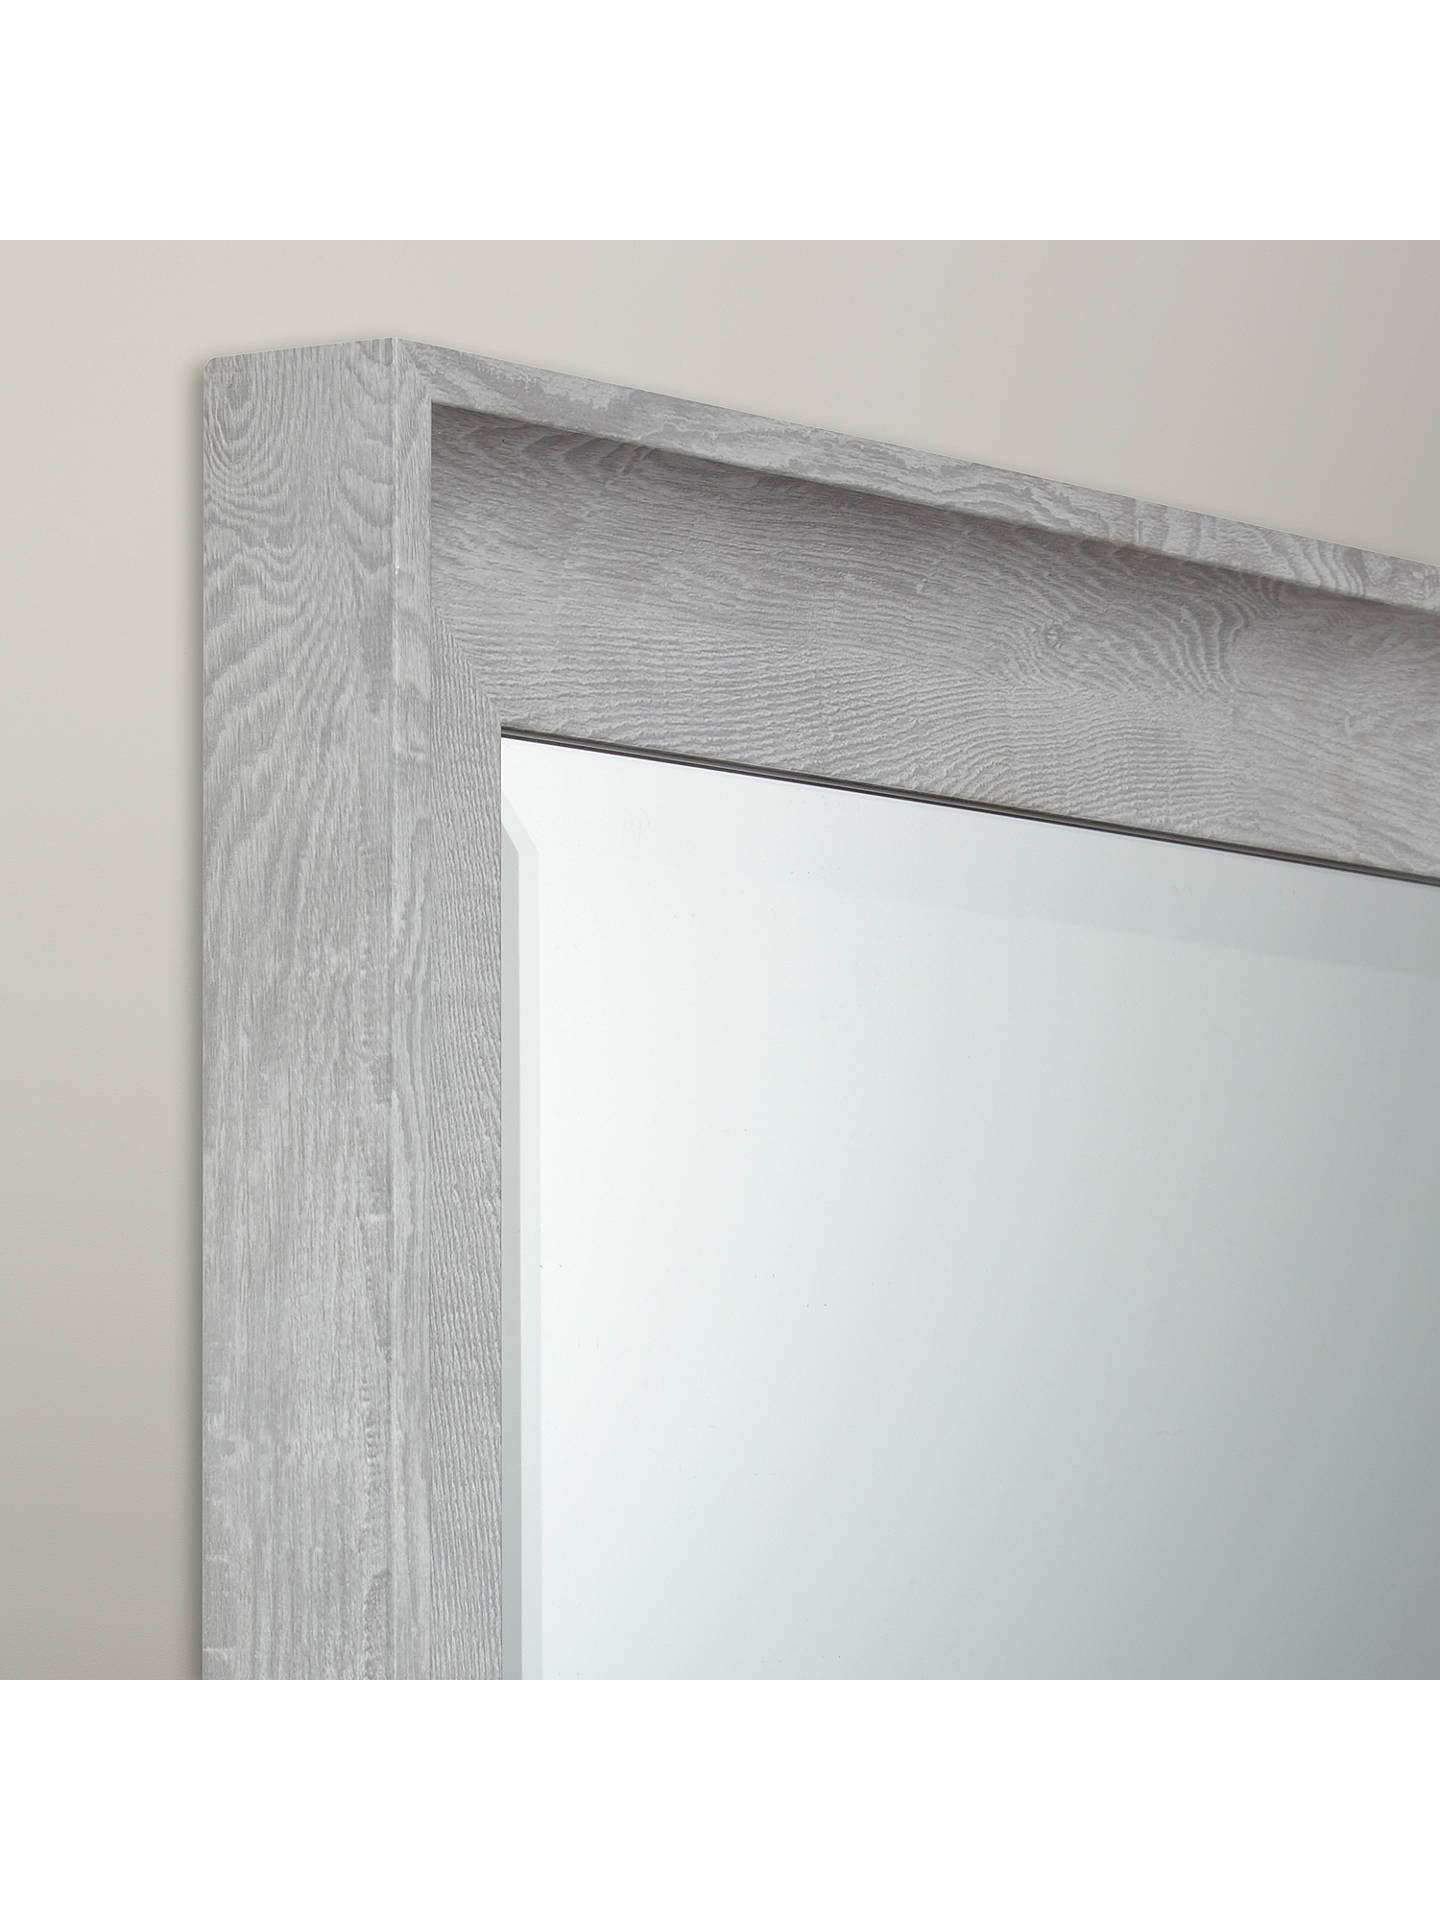 472d8298a073 ... Buy John Lewis & Partners Coastal Textured Full Length Mirror, 120 x  40cm, Grey ...